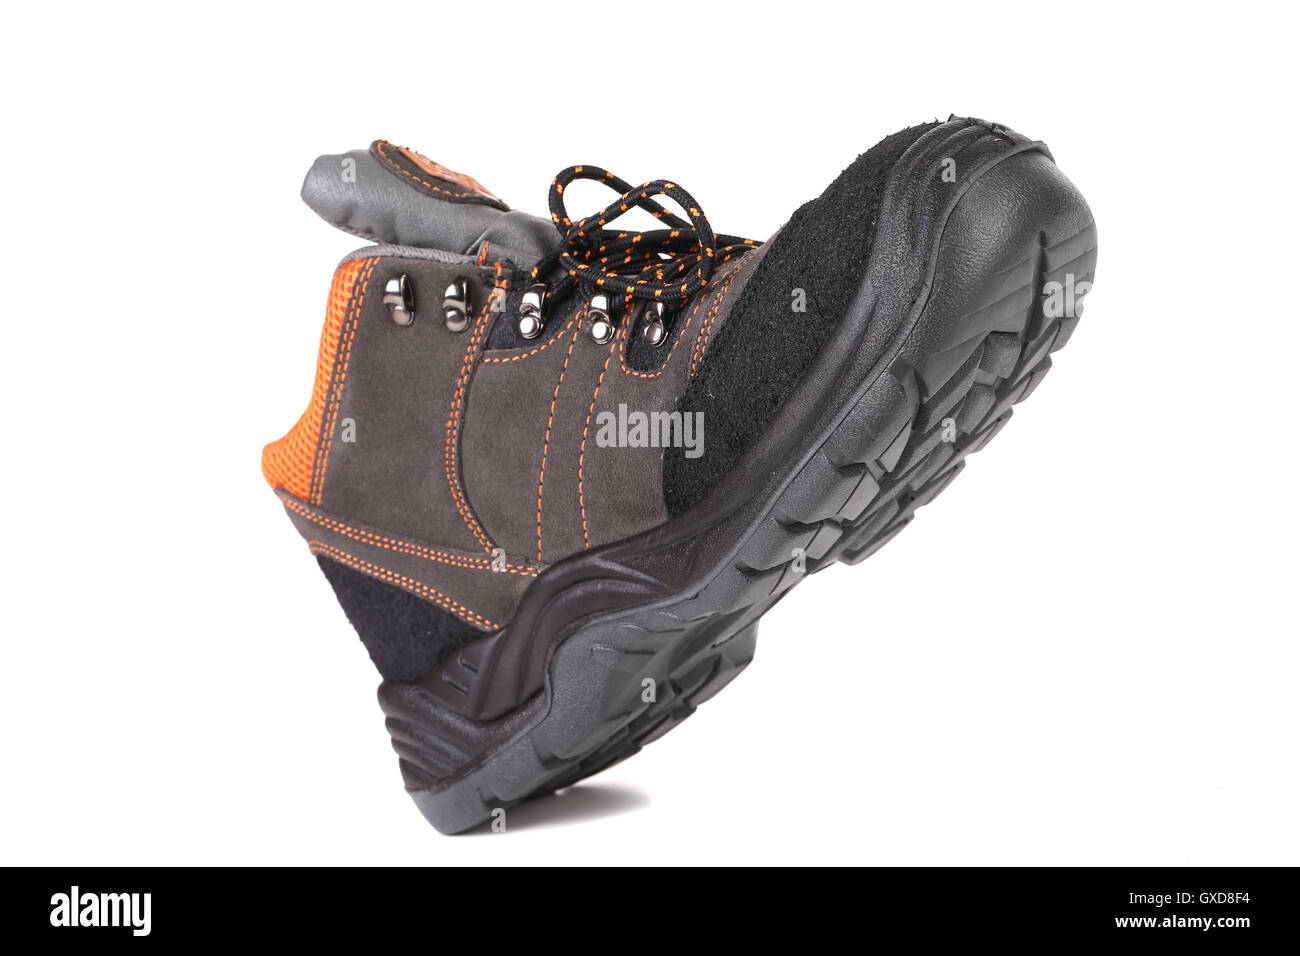 New brown working boot. - Stock Image